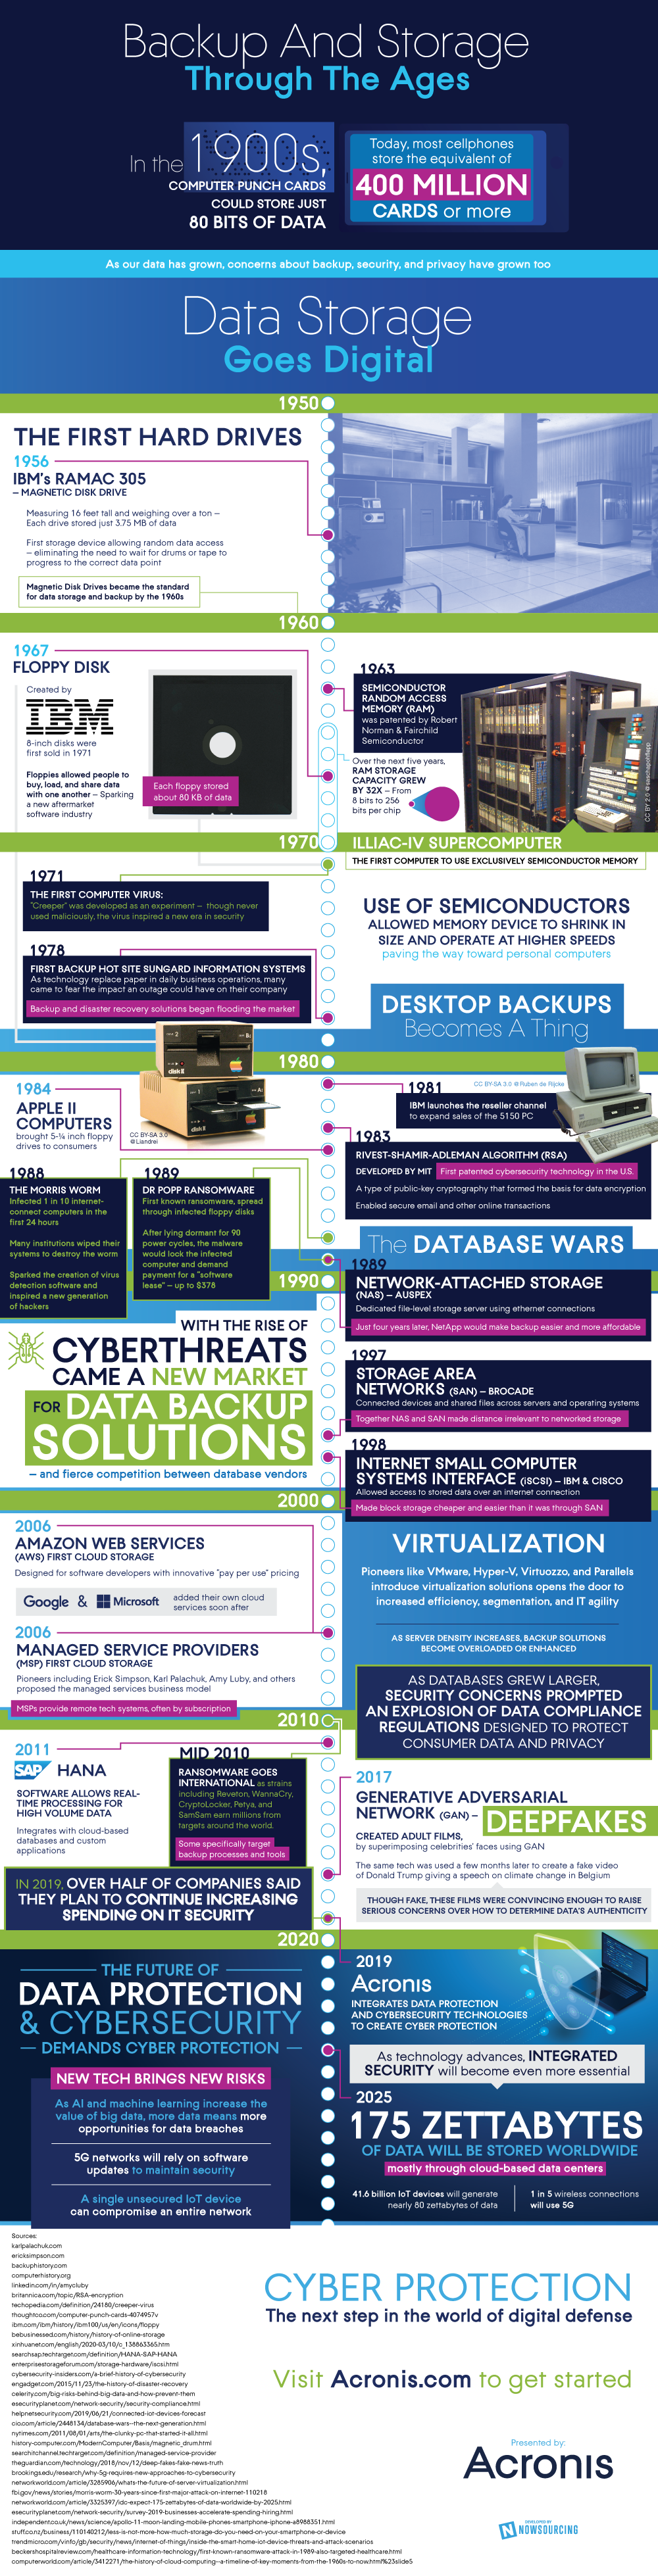 The Evolution of Cyber Protection [Infographic]